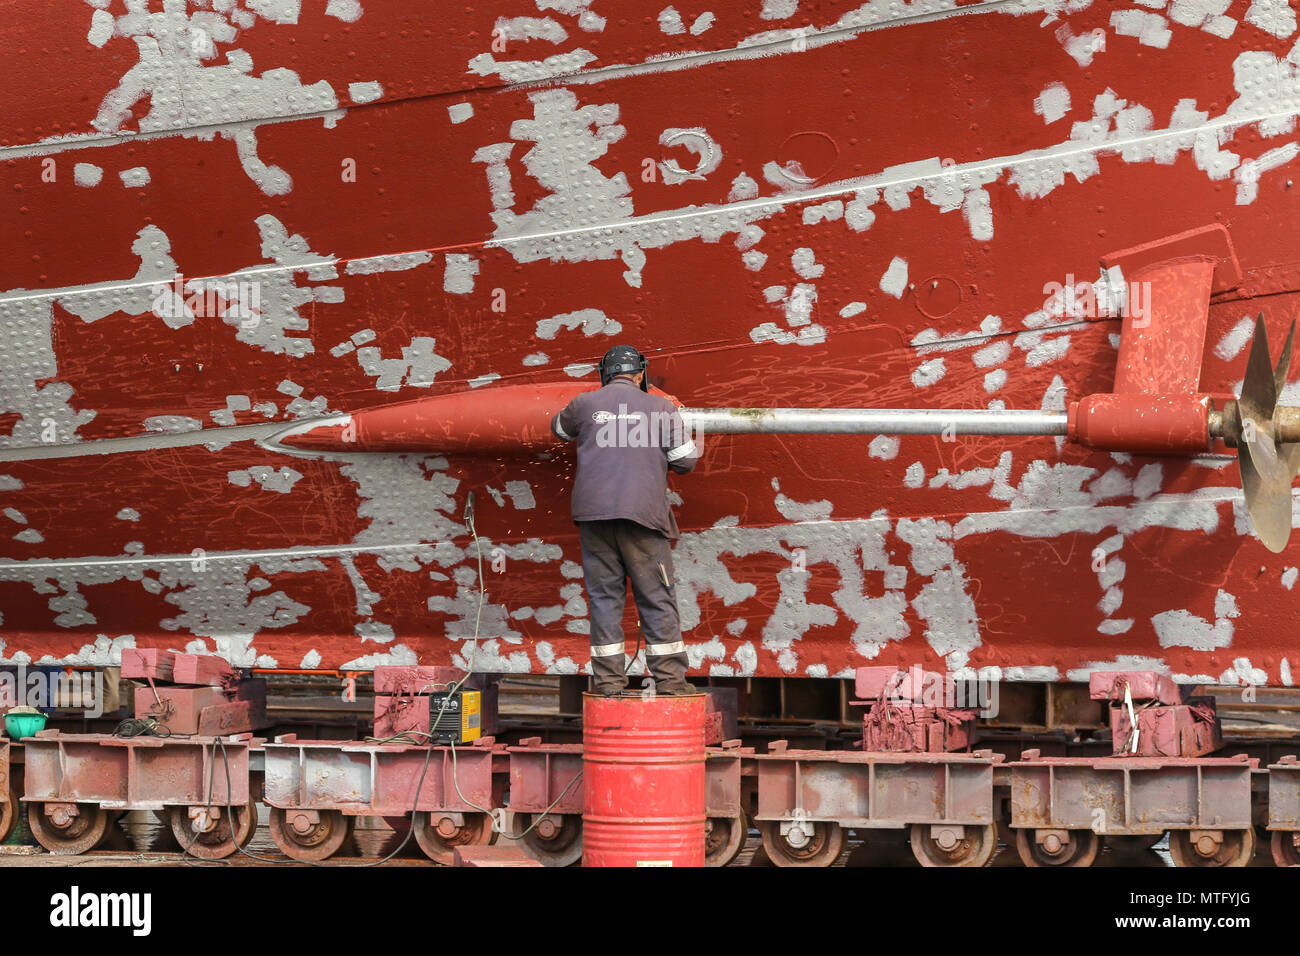 Welder working on a red boat in need to paint, dry dock, market district, cape town, South Africa - Stock Image